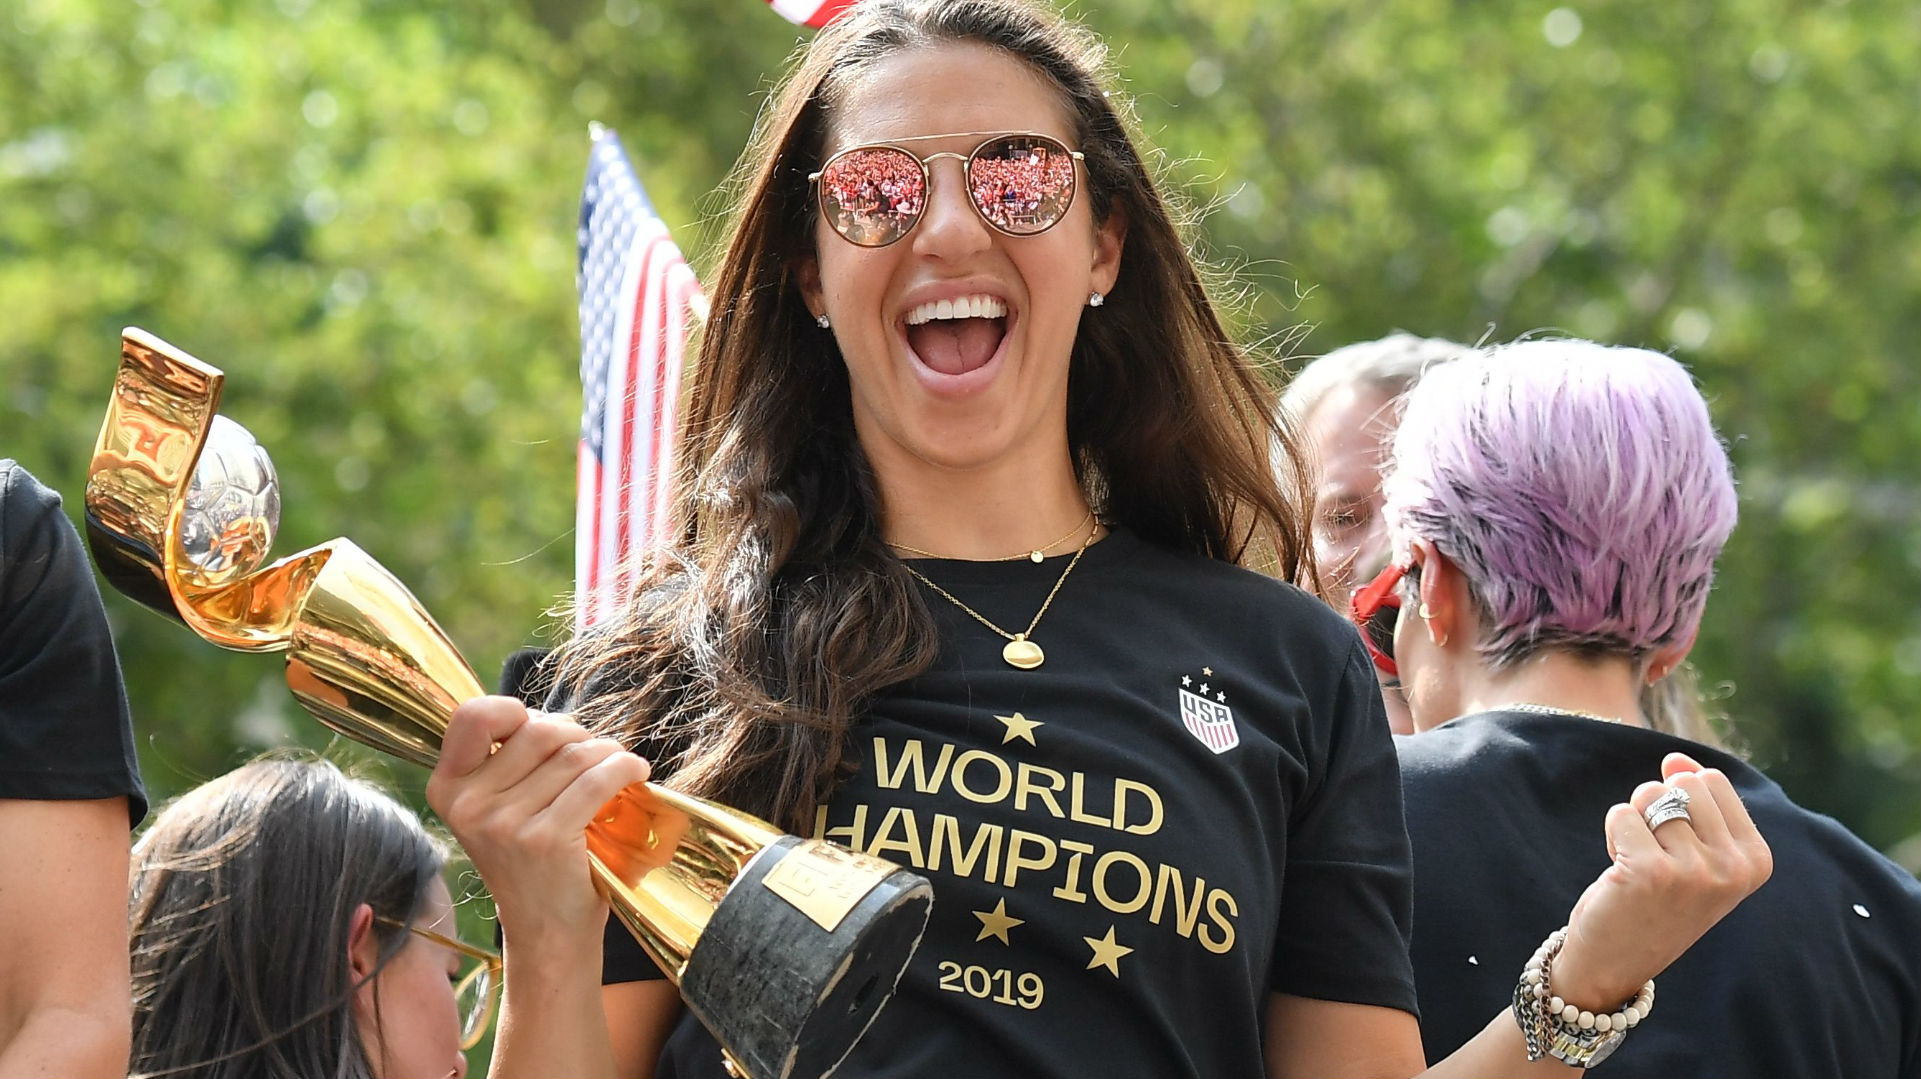 'There's got to be a first for everything': USWNT star Carli Lloyd eyes historic NFL opportunity